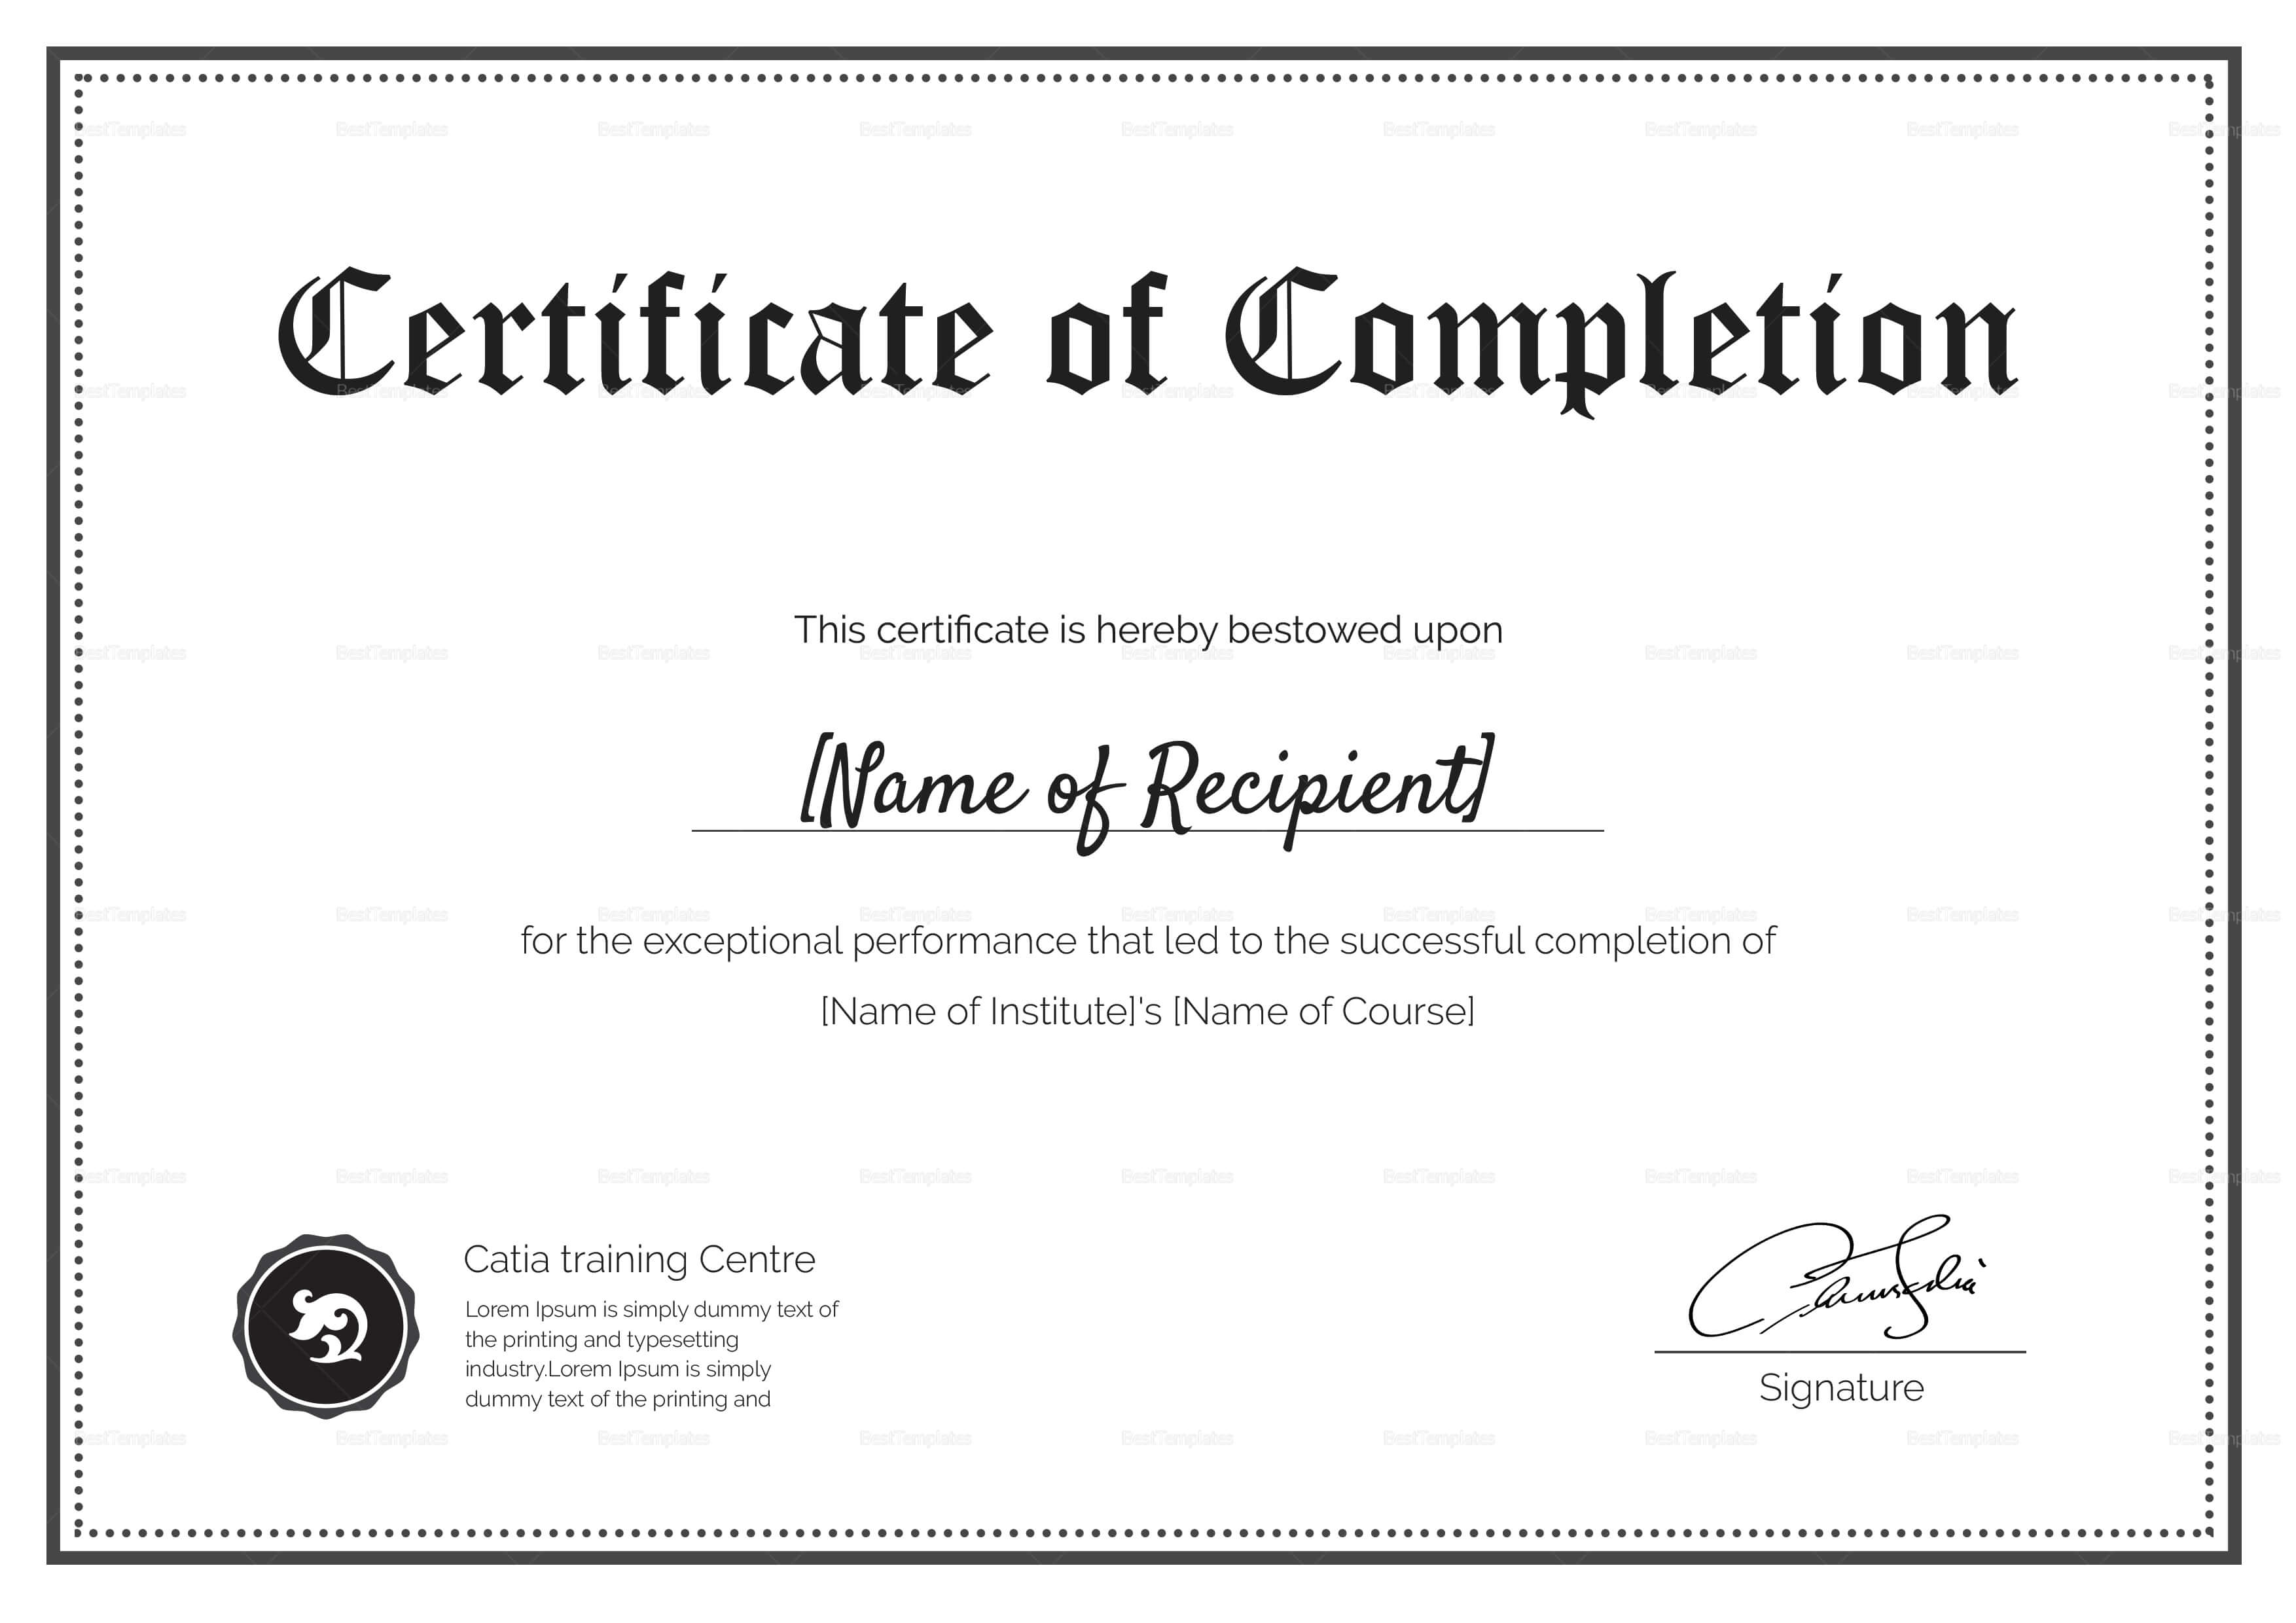 019 Certificate Of Completion Template Fantastic Ideas Free intended for Free Training Completion Certificate Templates